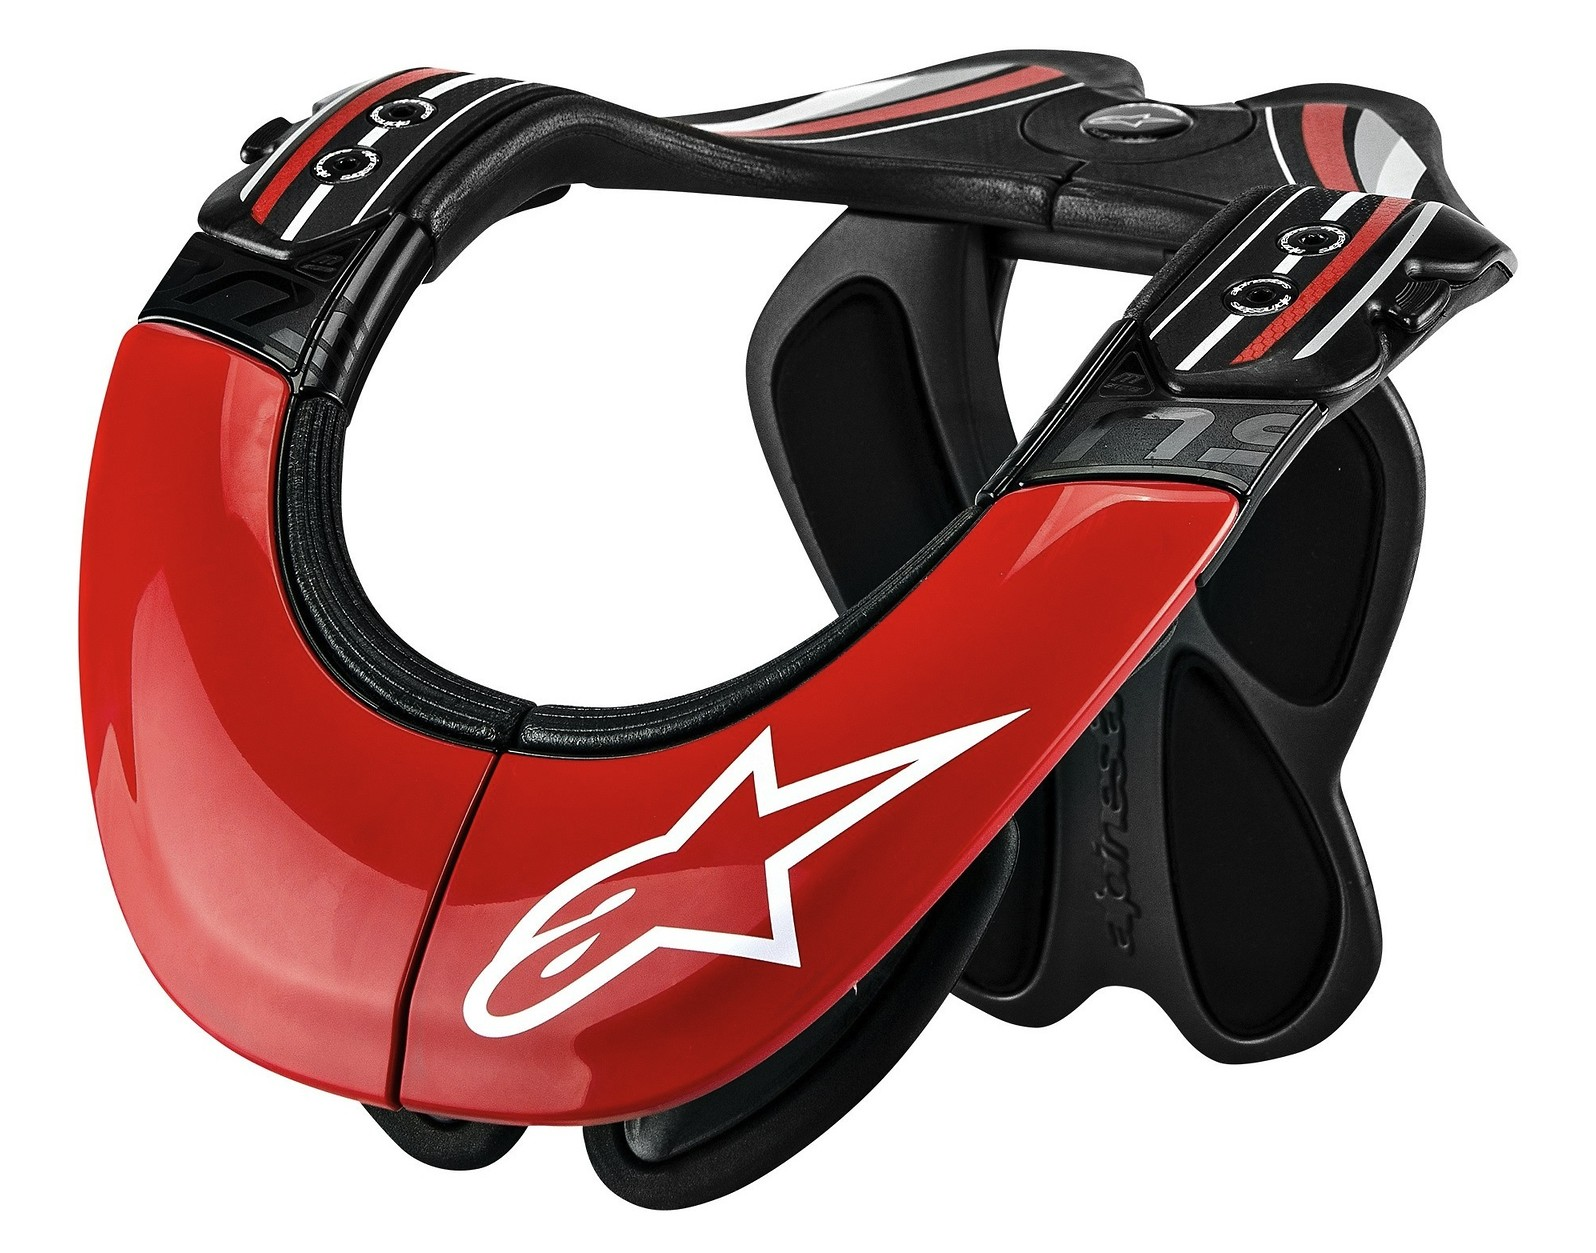 Alpinestars Bionic Neck Support Tech Carbon Neck Brace